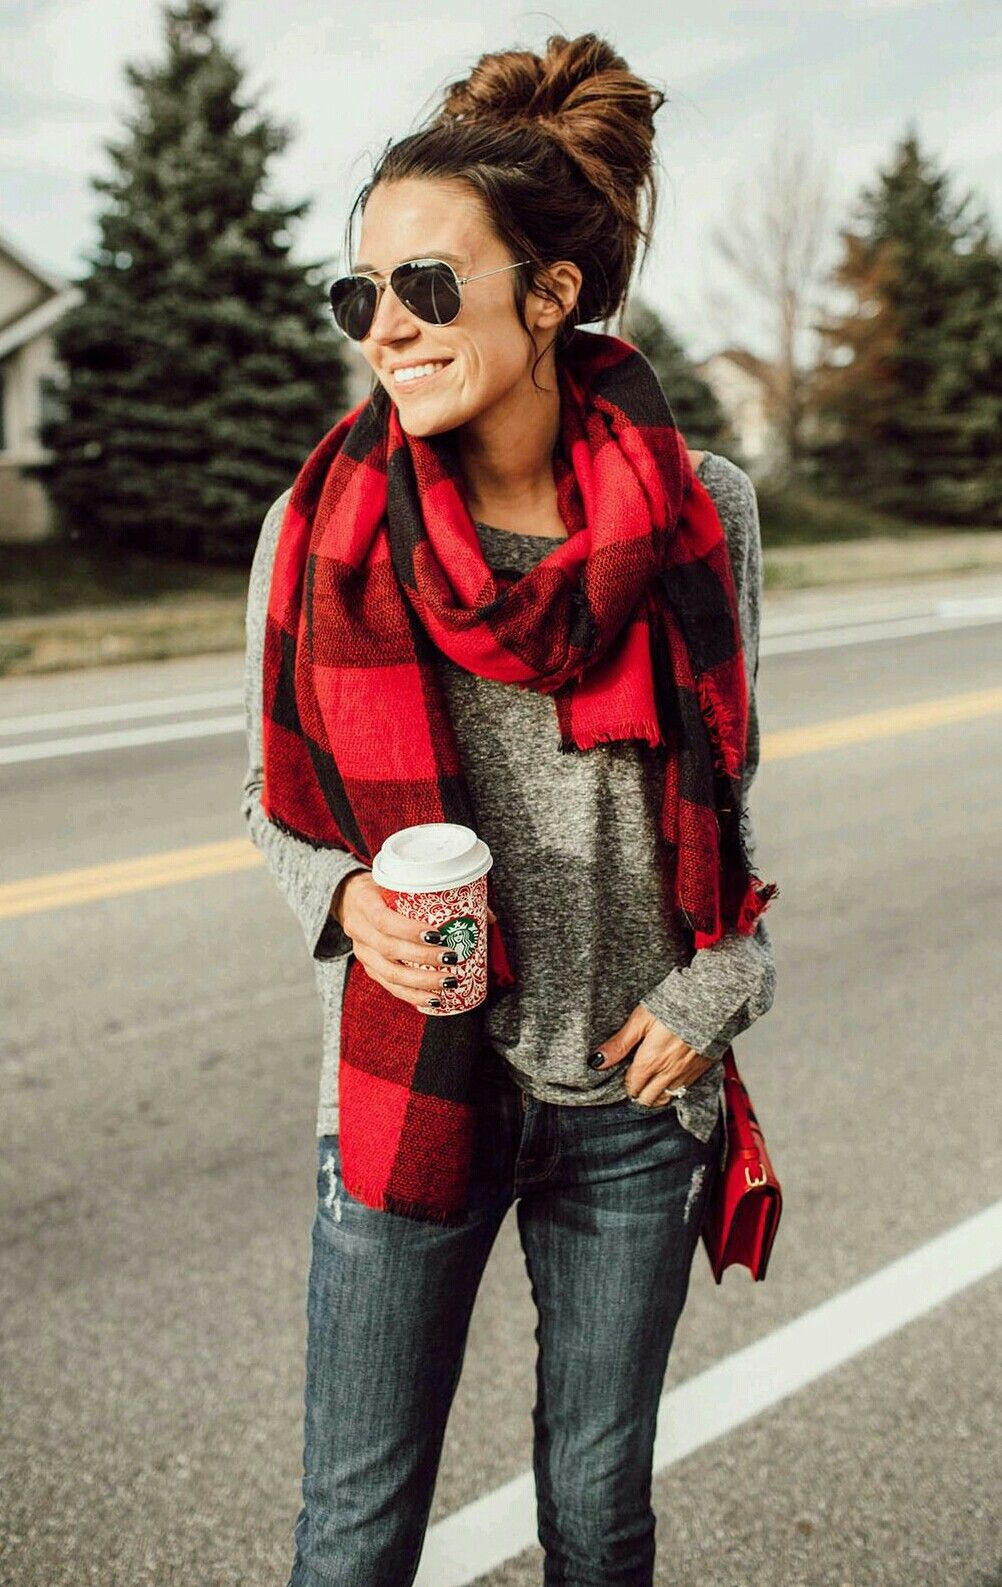 Flannel shirt outfit ideas  Red and black perfect for an xmas winter weekend  Closet